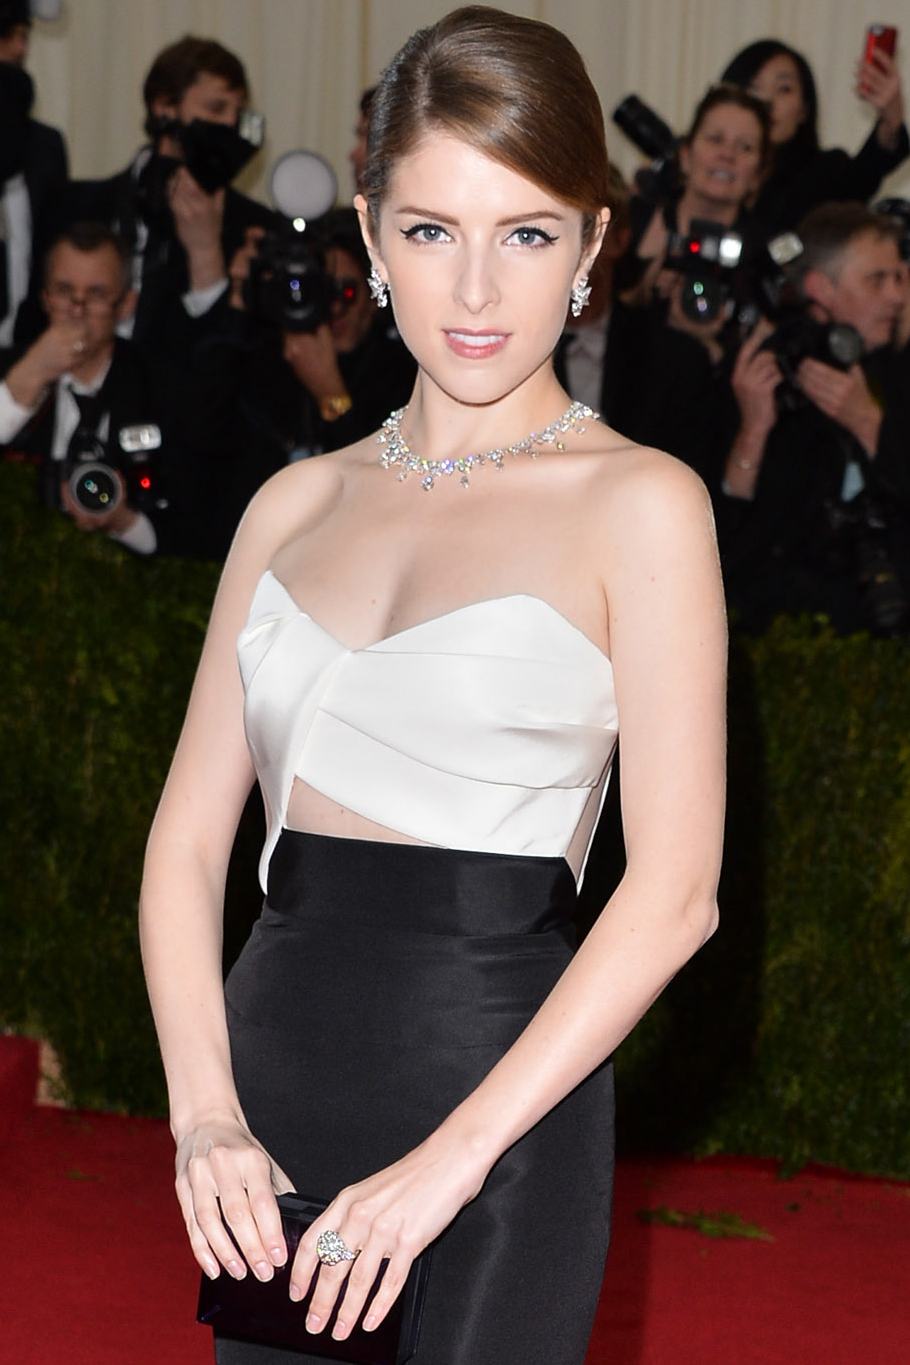 Anna Kendrick will lead the voice cast of Trolls, as an upbeat princess named Poppy.